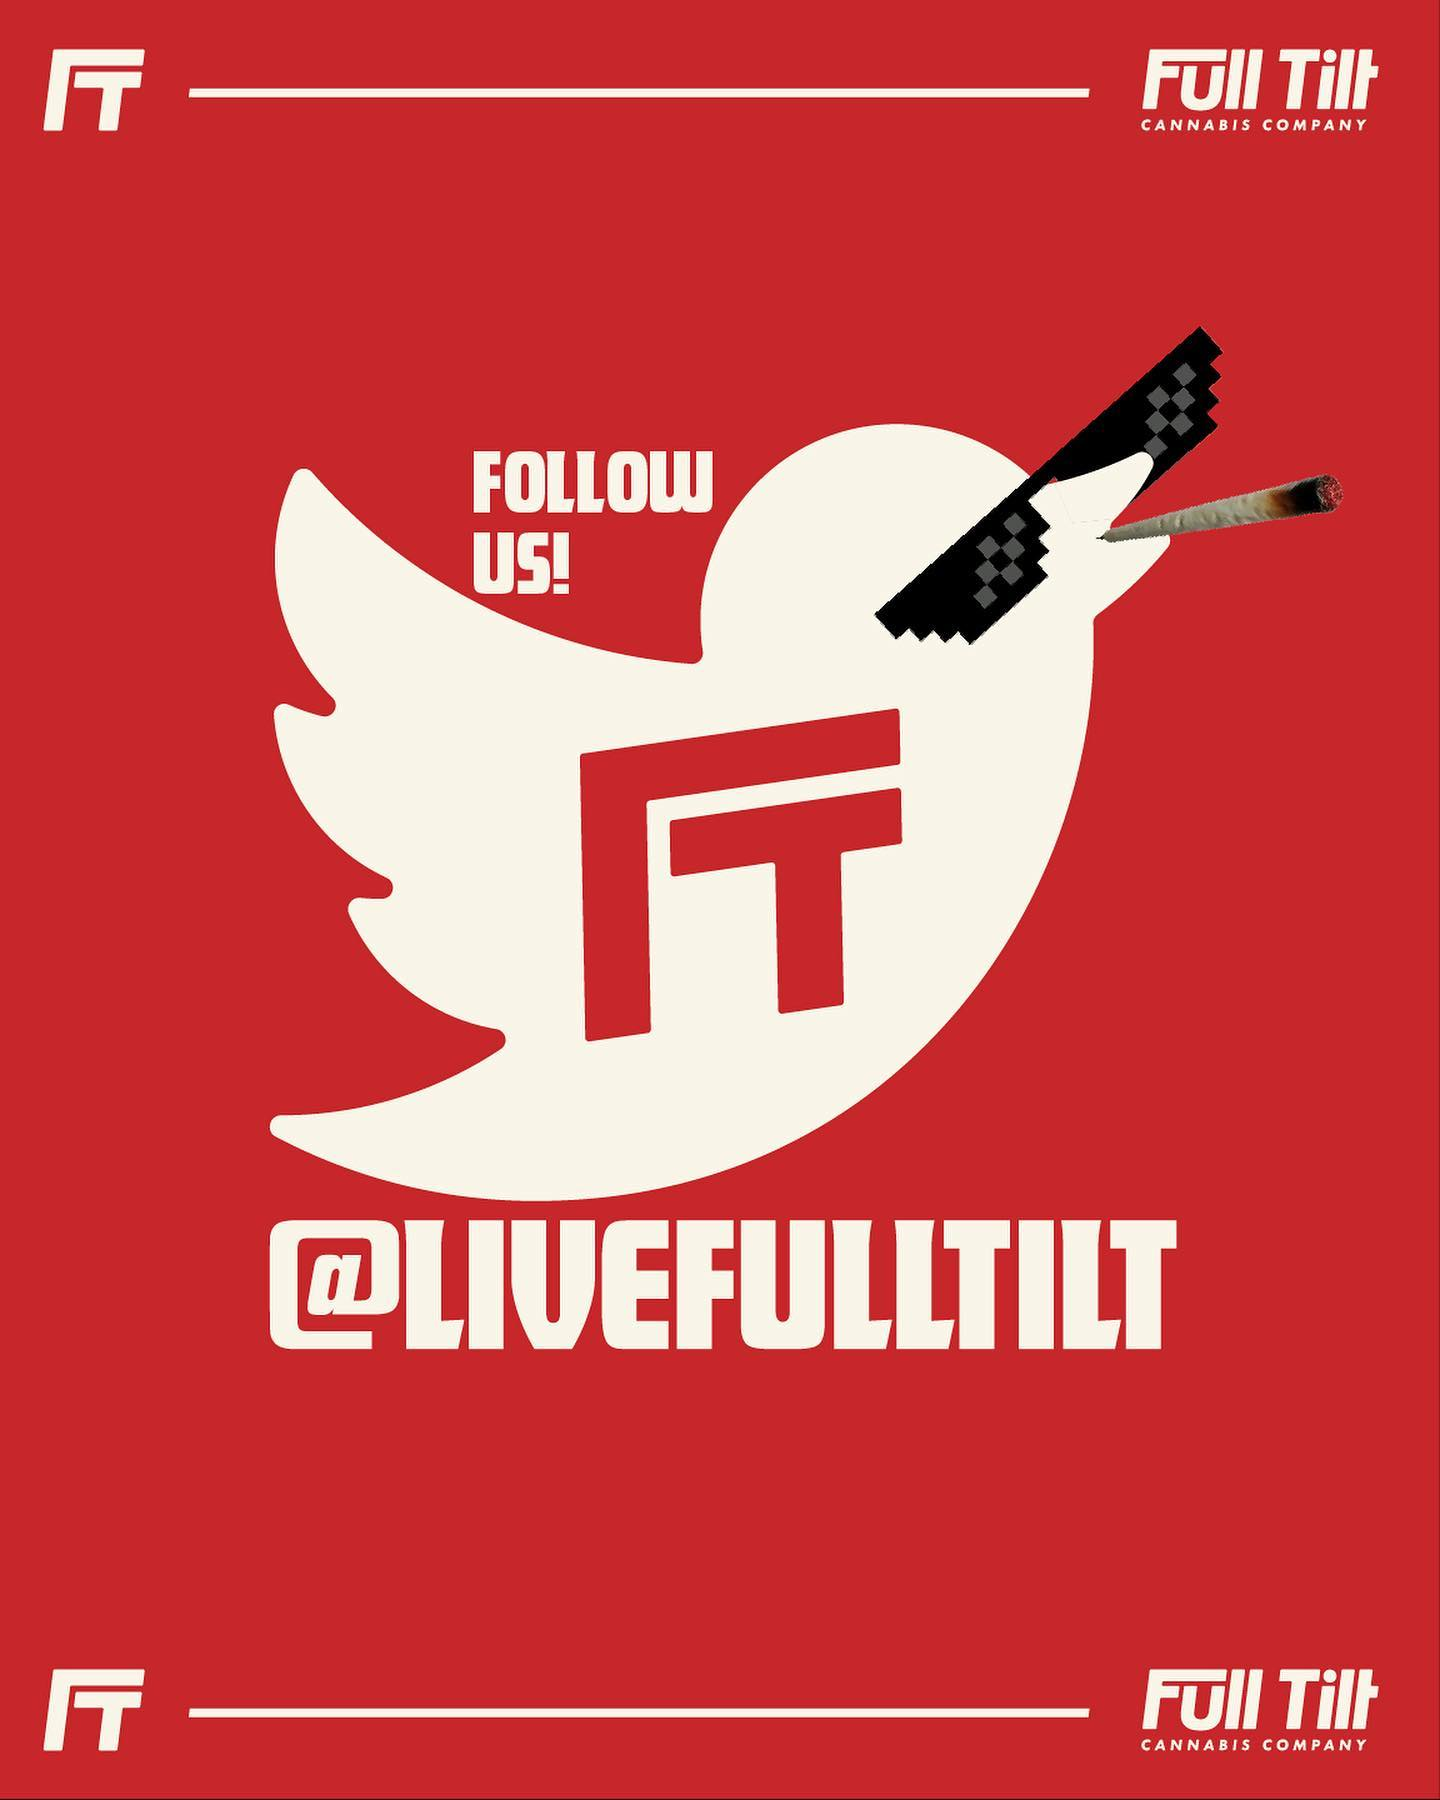 Play your cards right and diversify your social. Hold @instagram accountable by using the competition. We are stronger than them. #livefulltilt